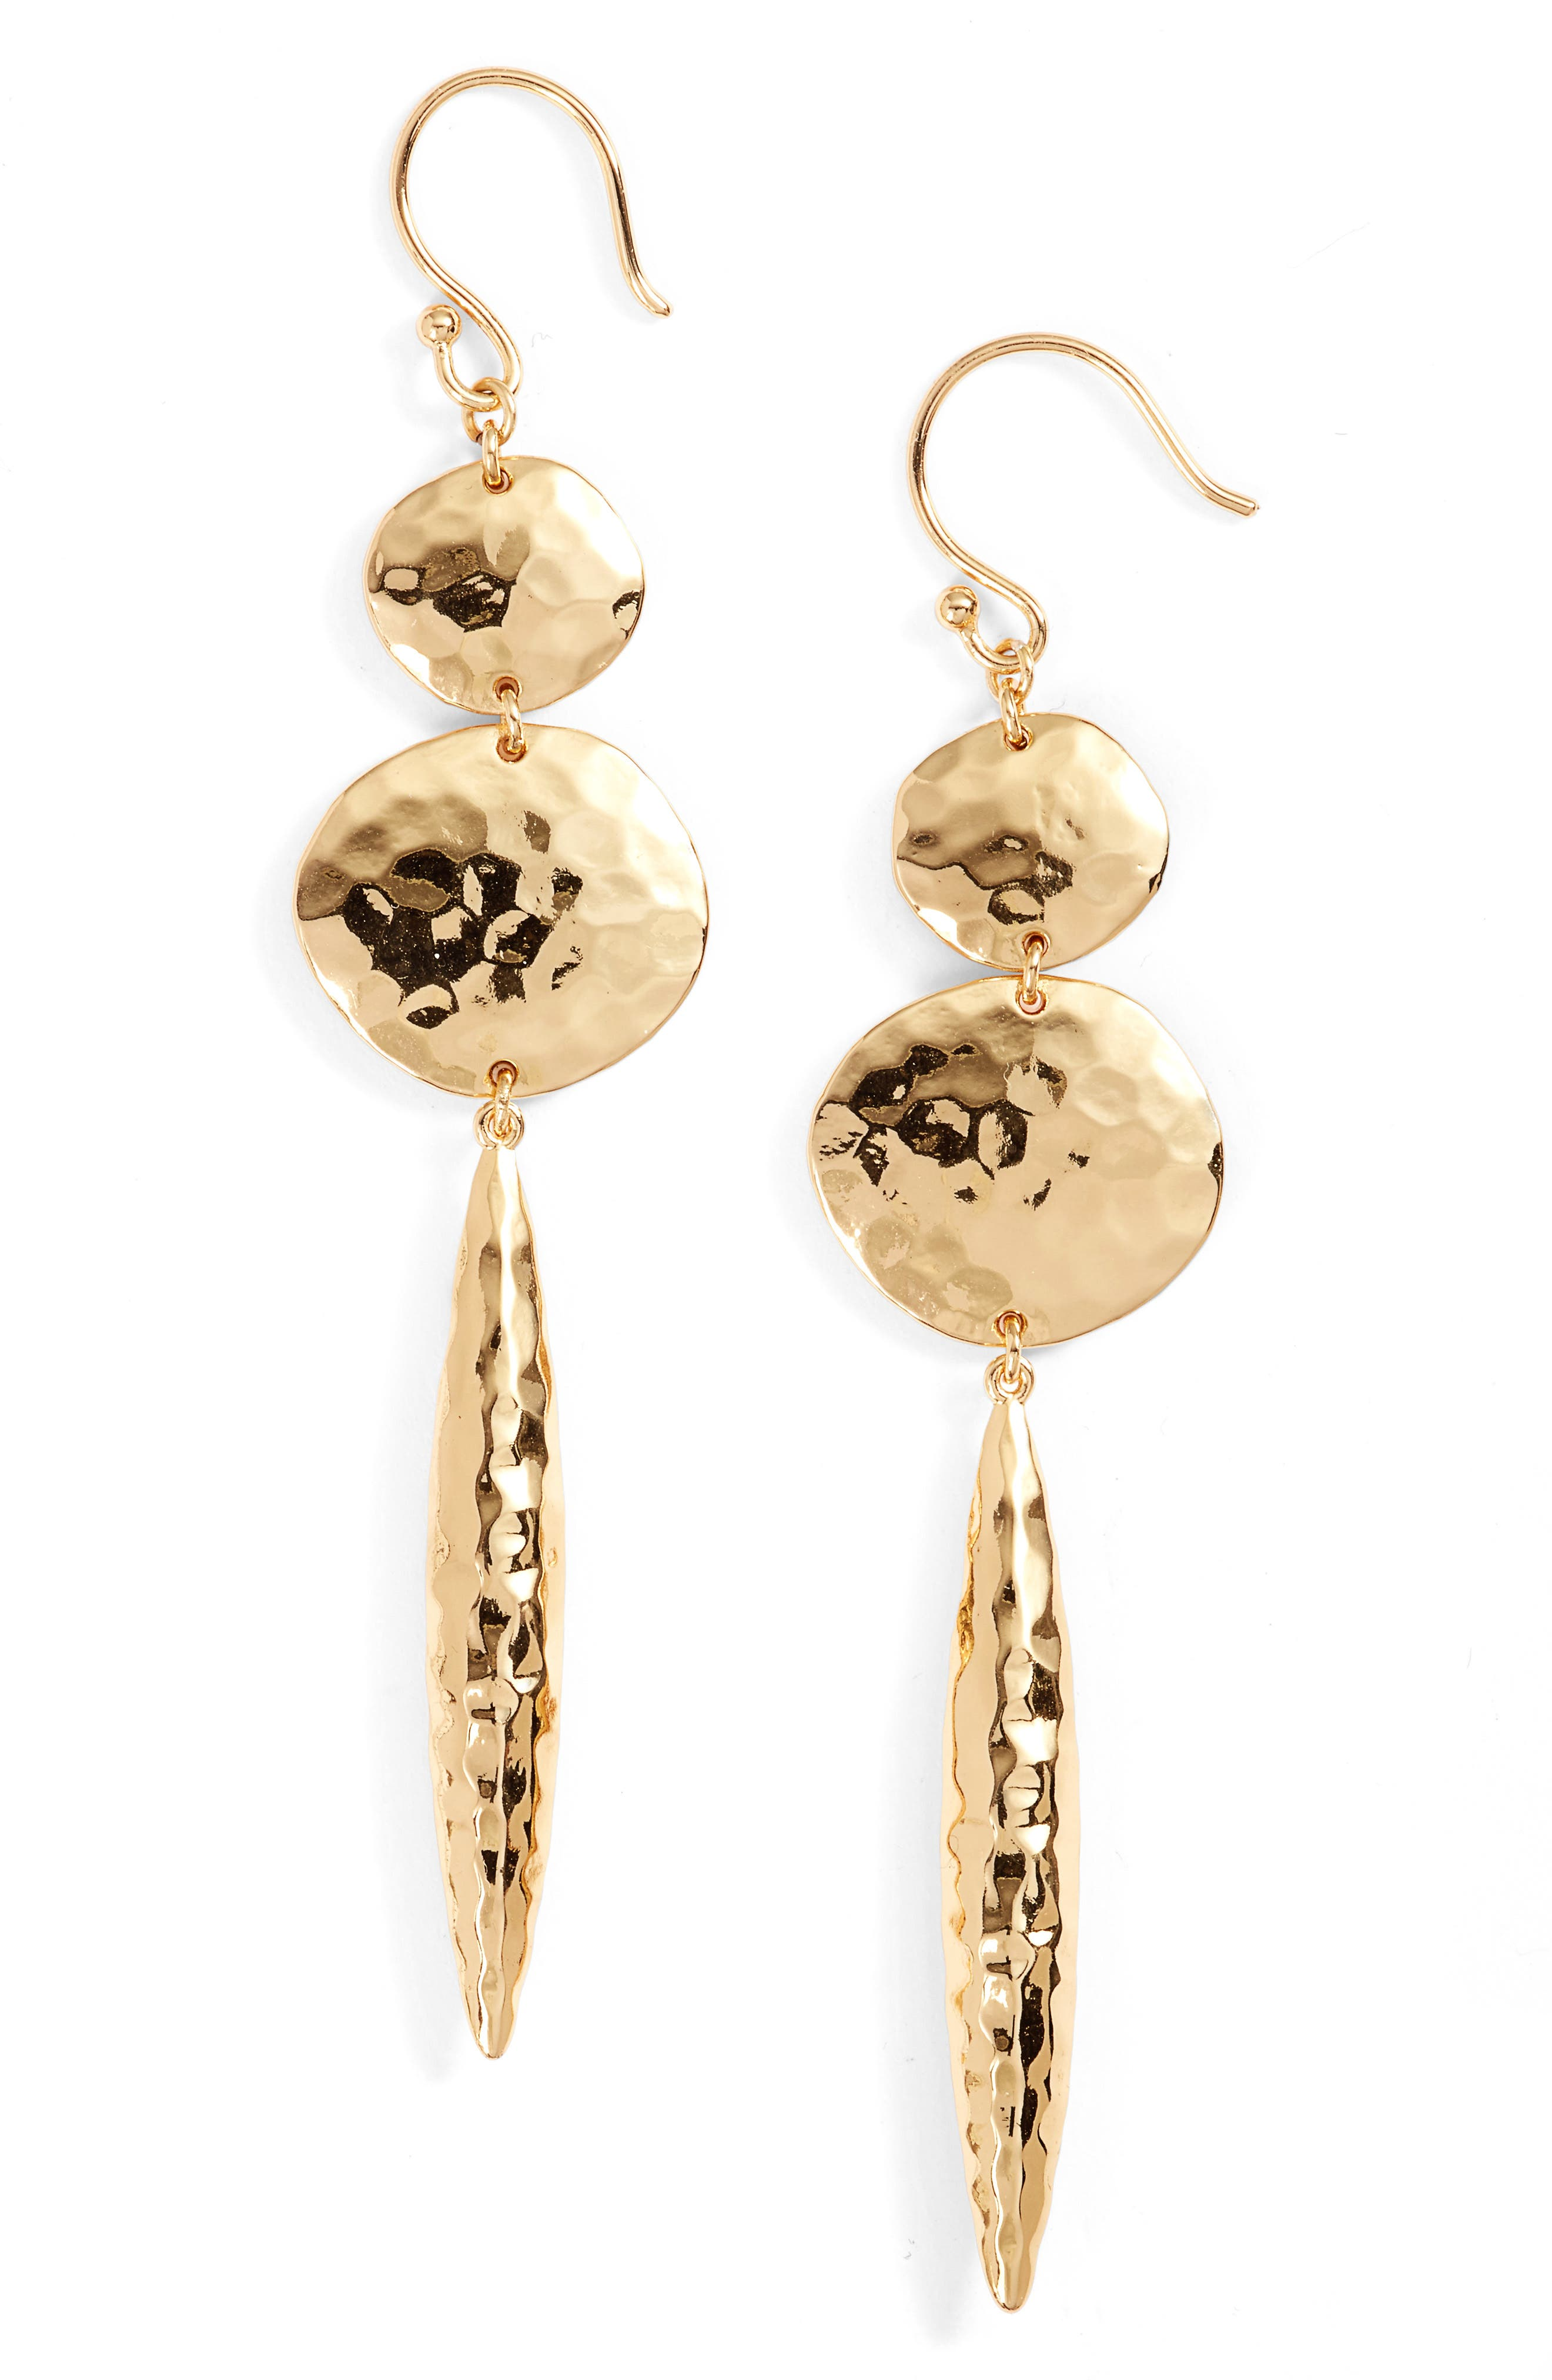 GORJANA Gypset Drop Earrings